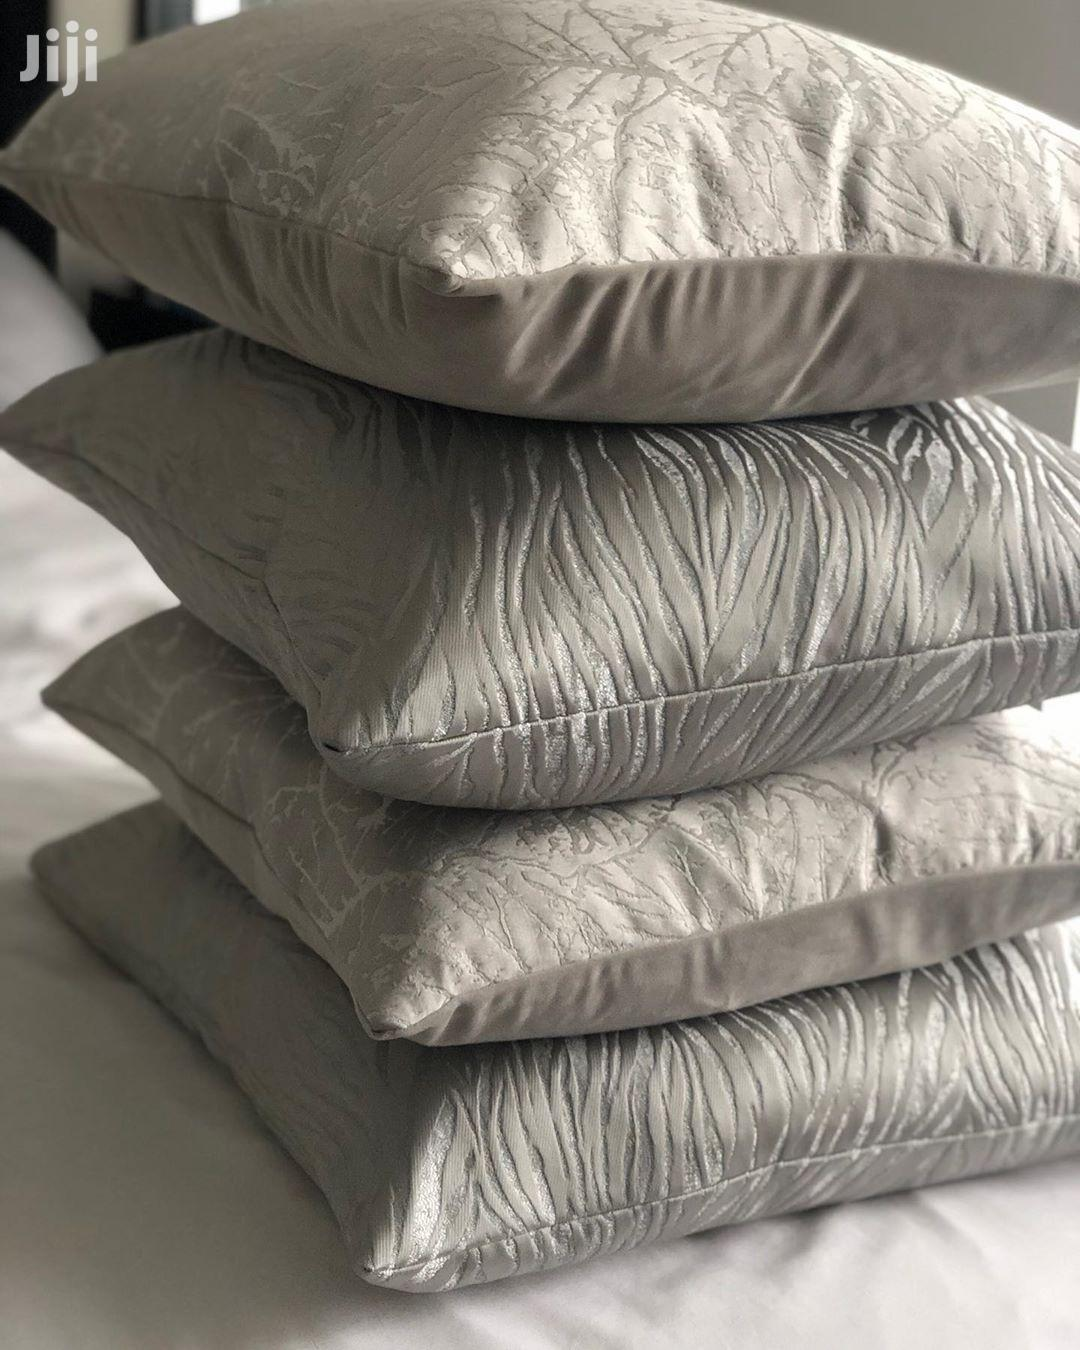 Decorated Throw Pillows | Home Accessories for sale in Karen, Nairobi, Kenya